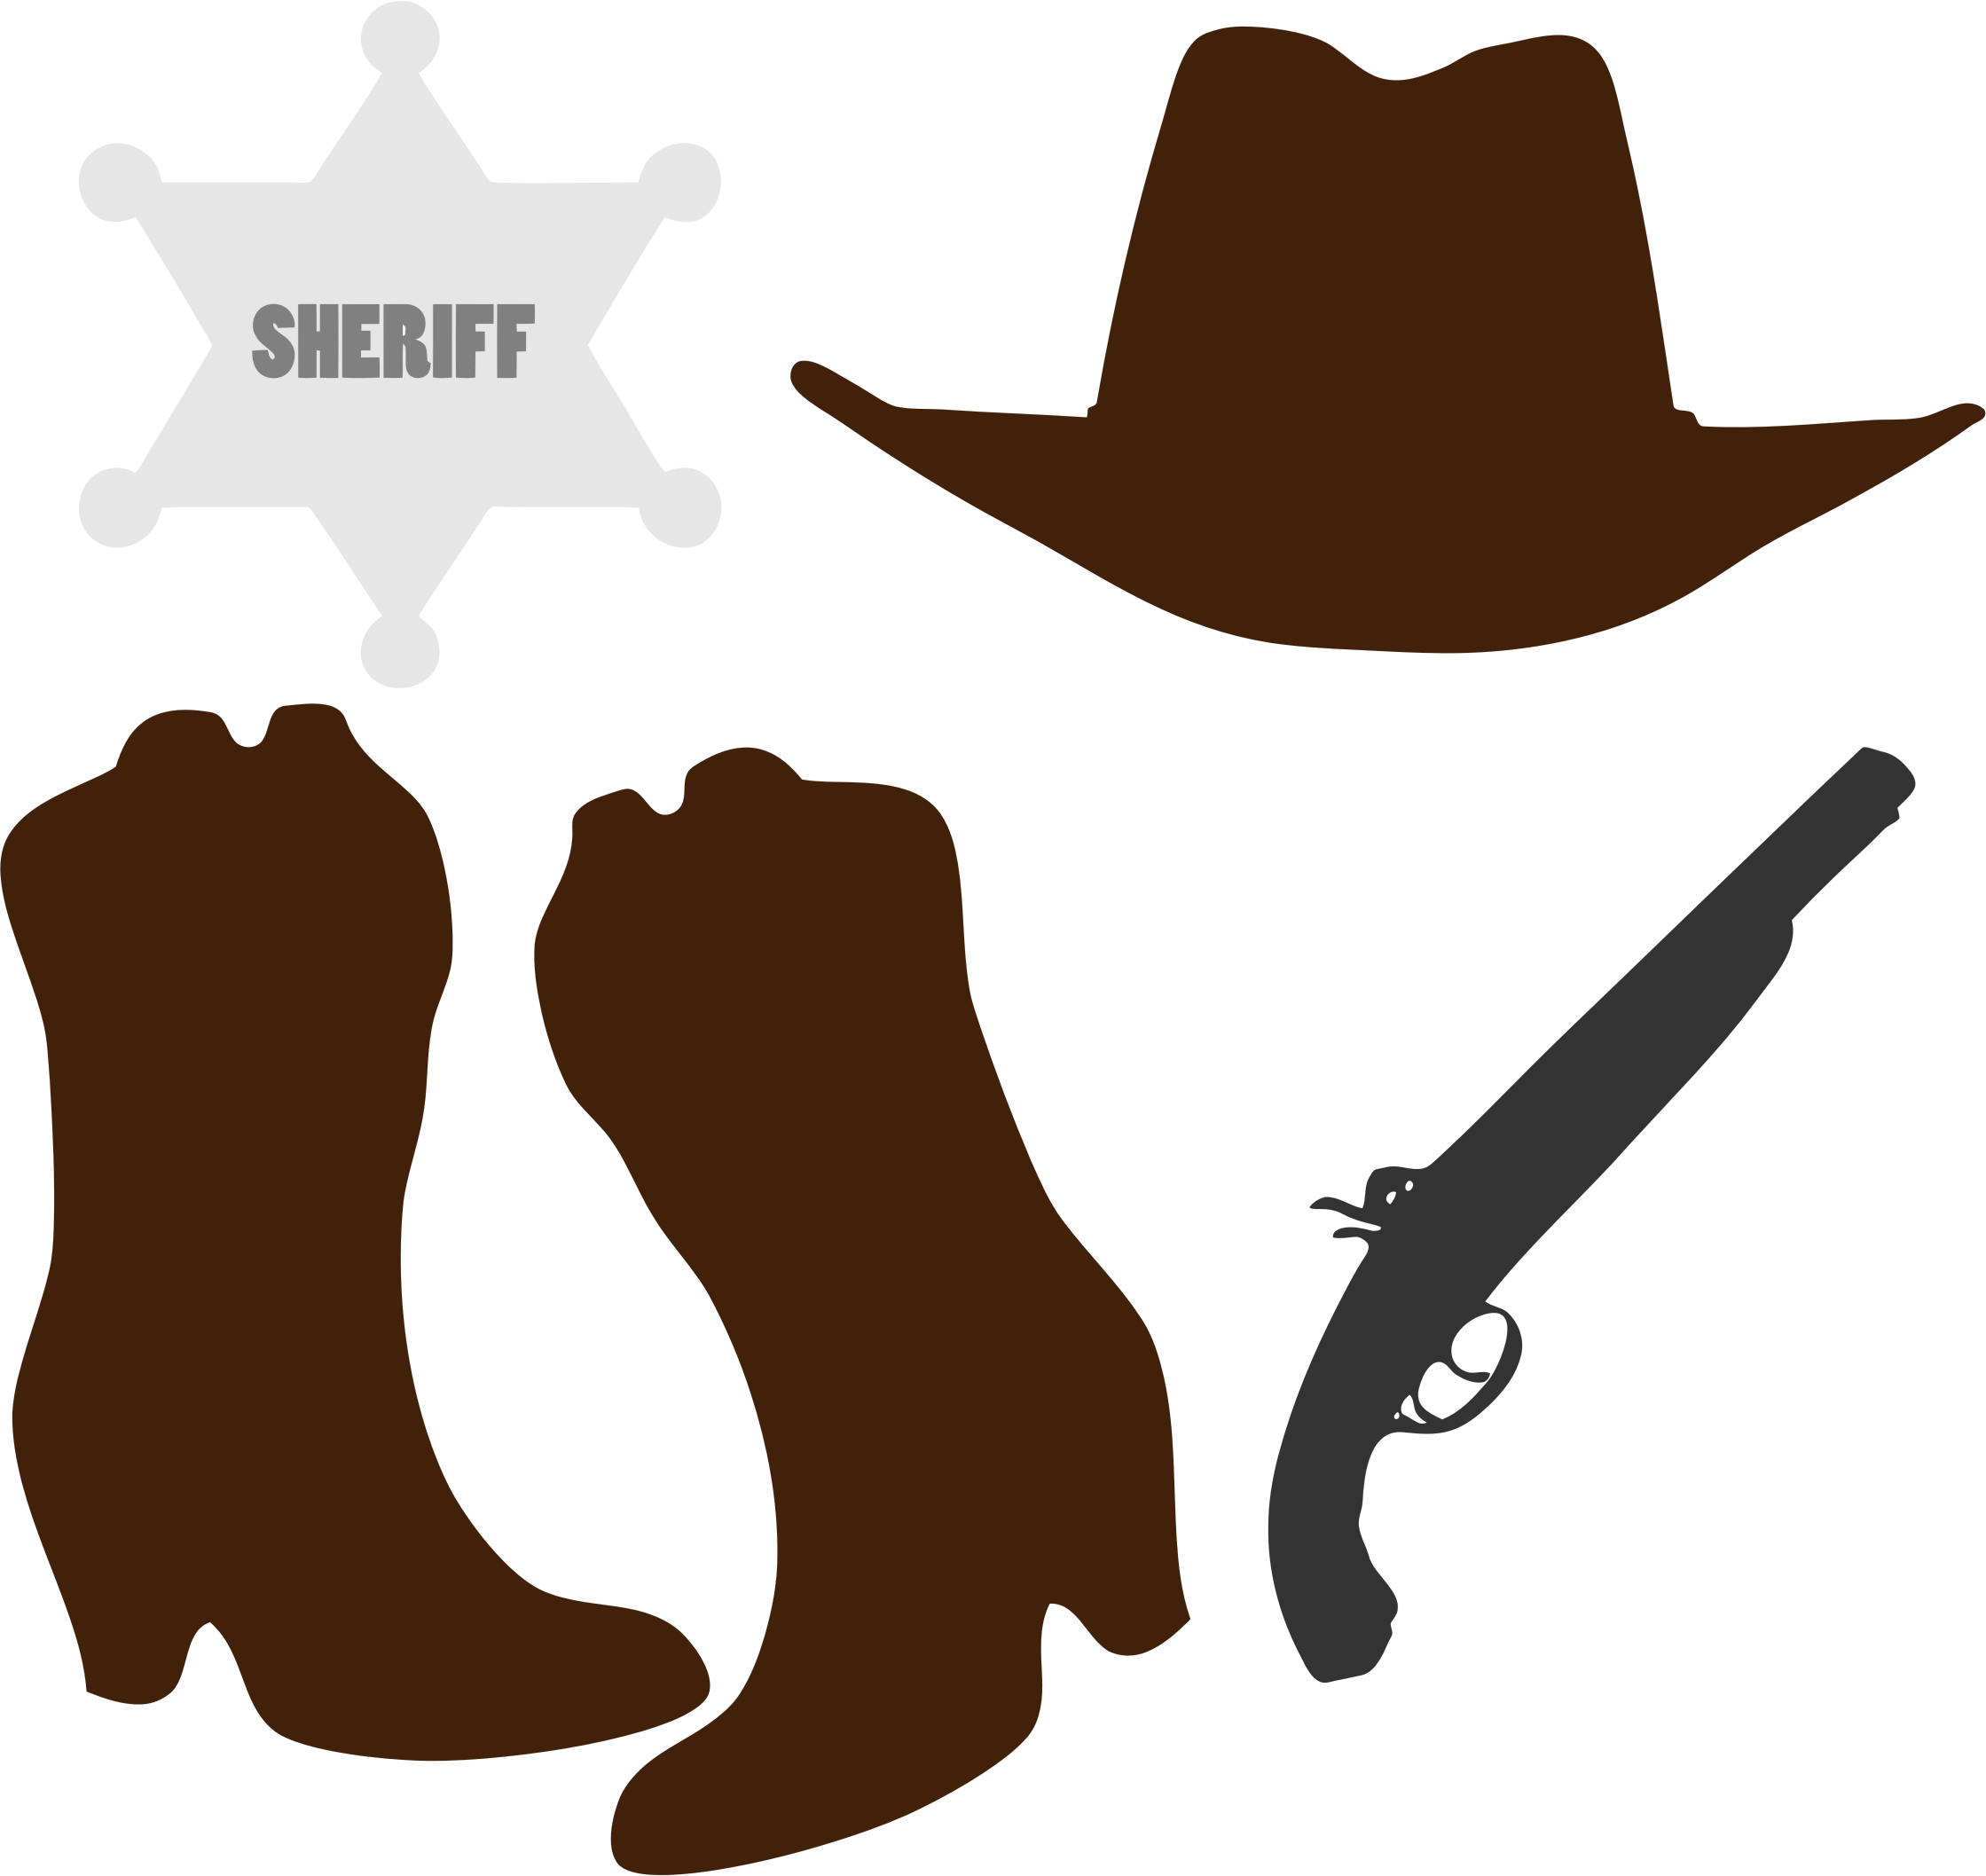 Cowboy clothing and accessories. Western clipart arrow vector freeuse